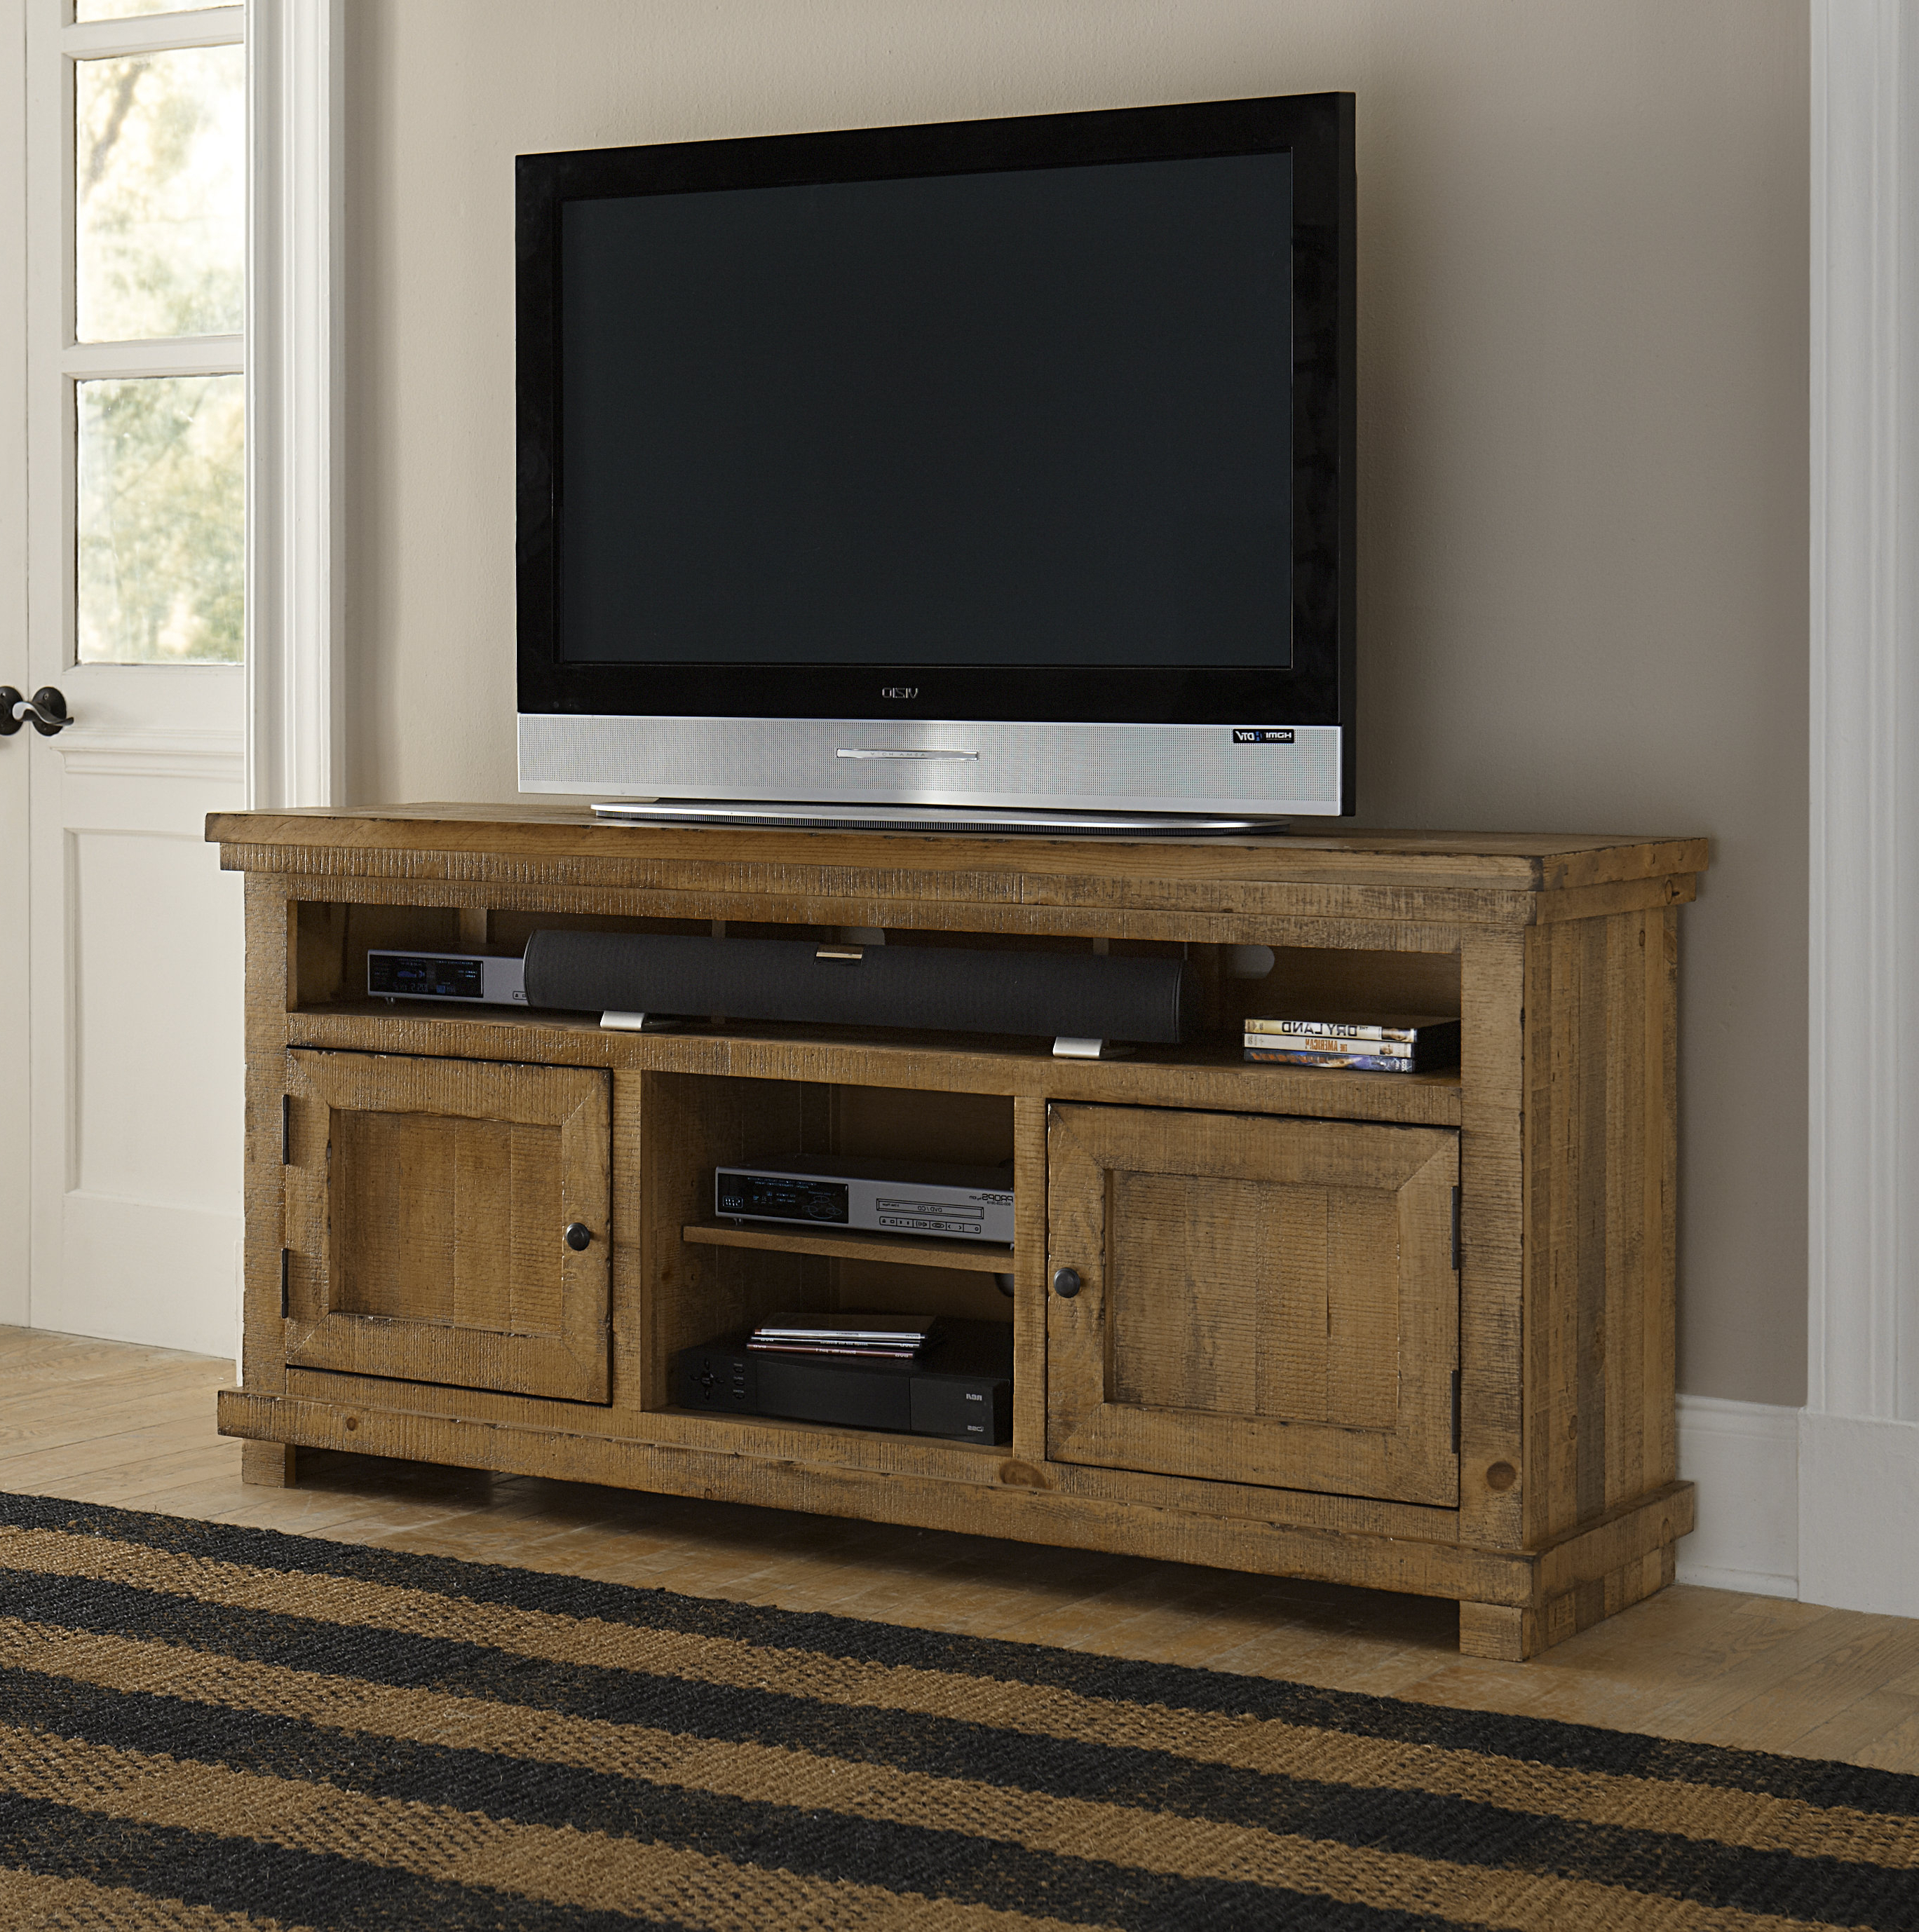 60 69 Inches Tv Stands | Birch Lane For Edwin Grey 64 Inch Tv Stands (Gallery 3 of 20)